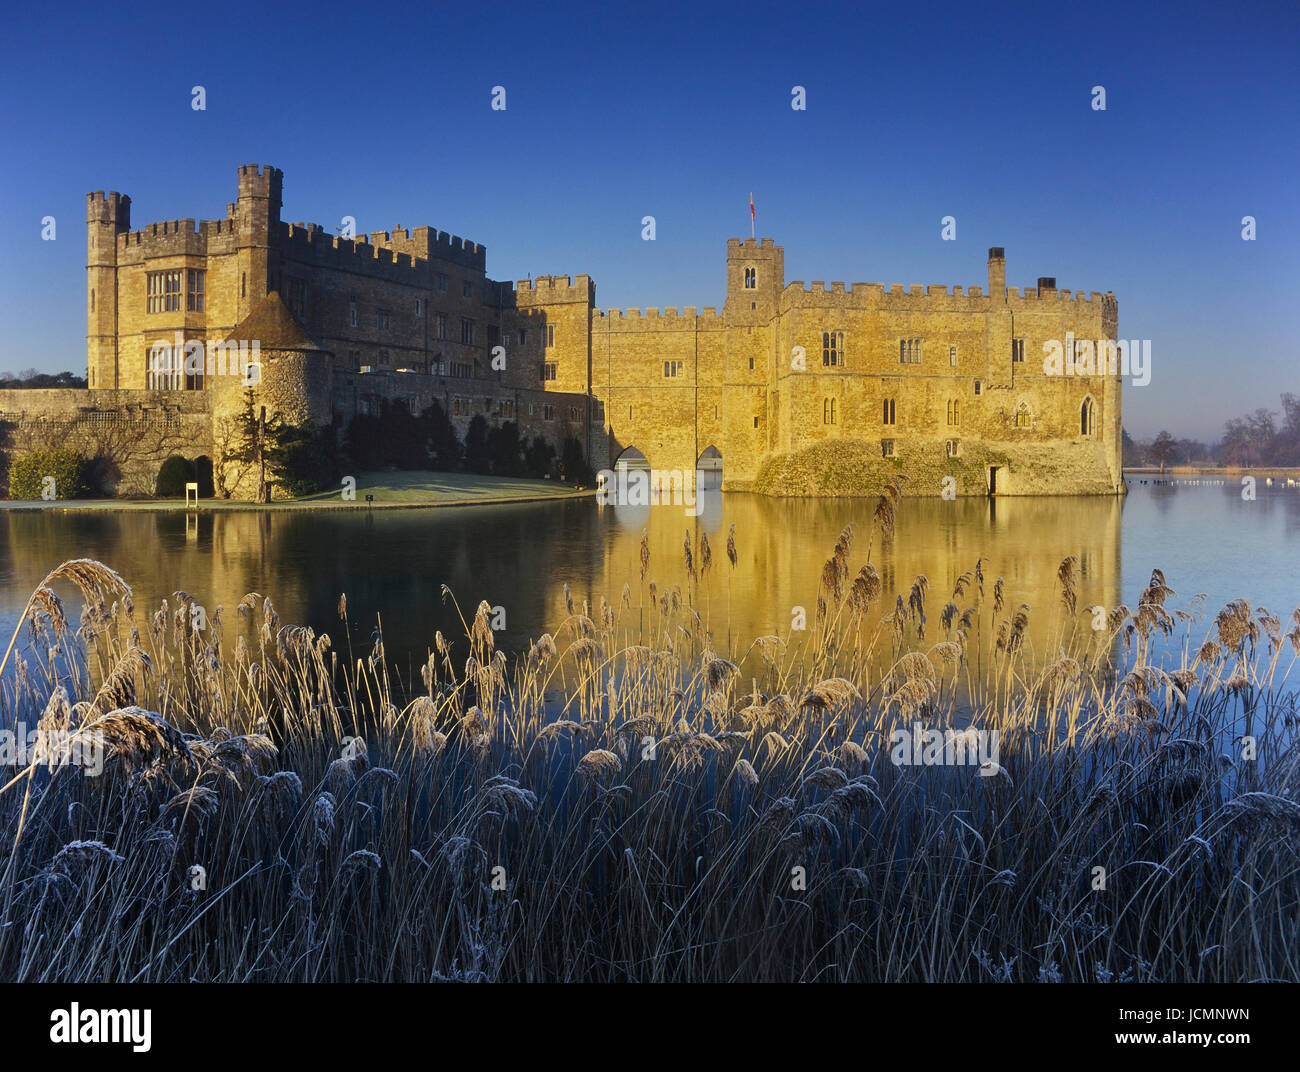 Frostiger Morgen am Leeds Castle. Kent. England. UK Stockbild